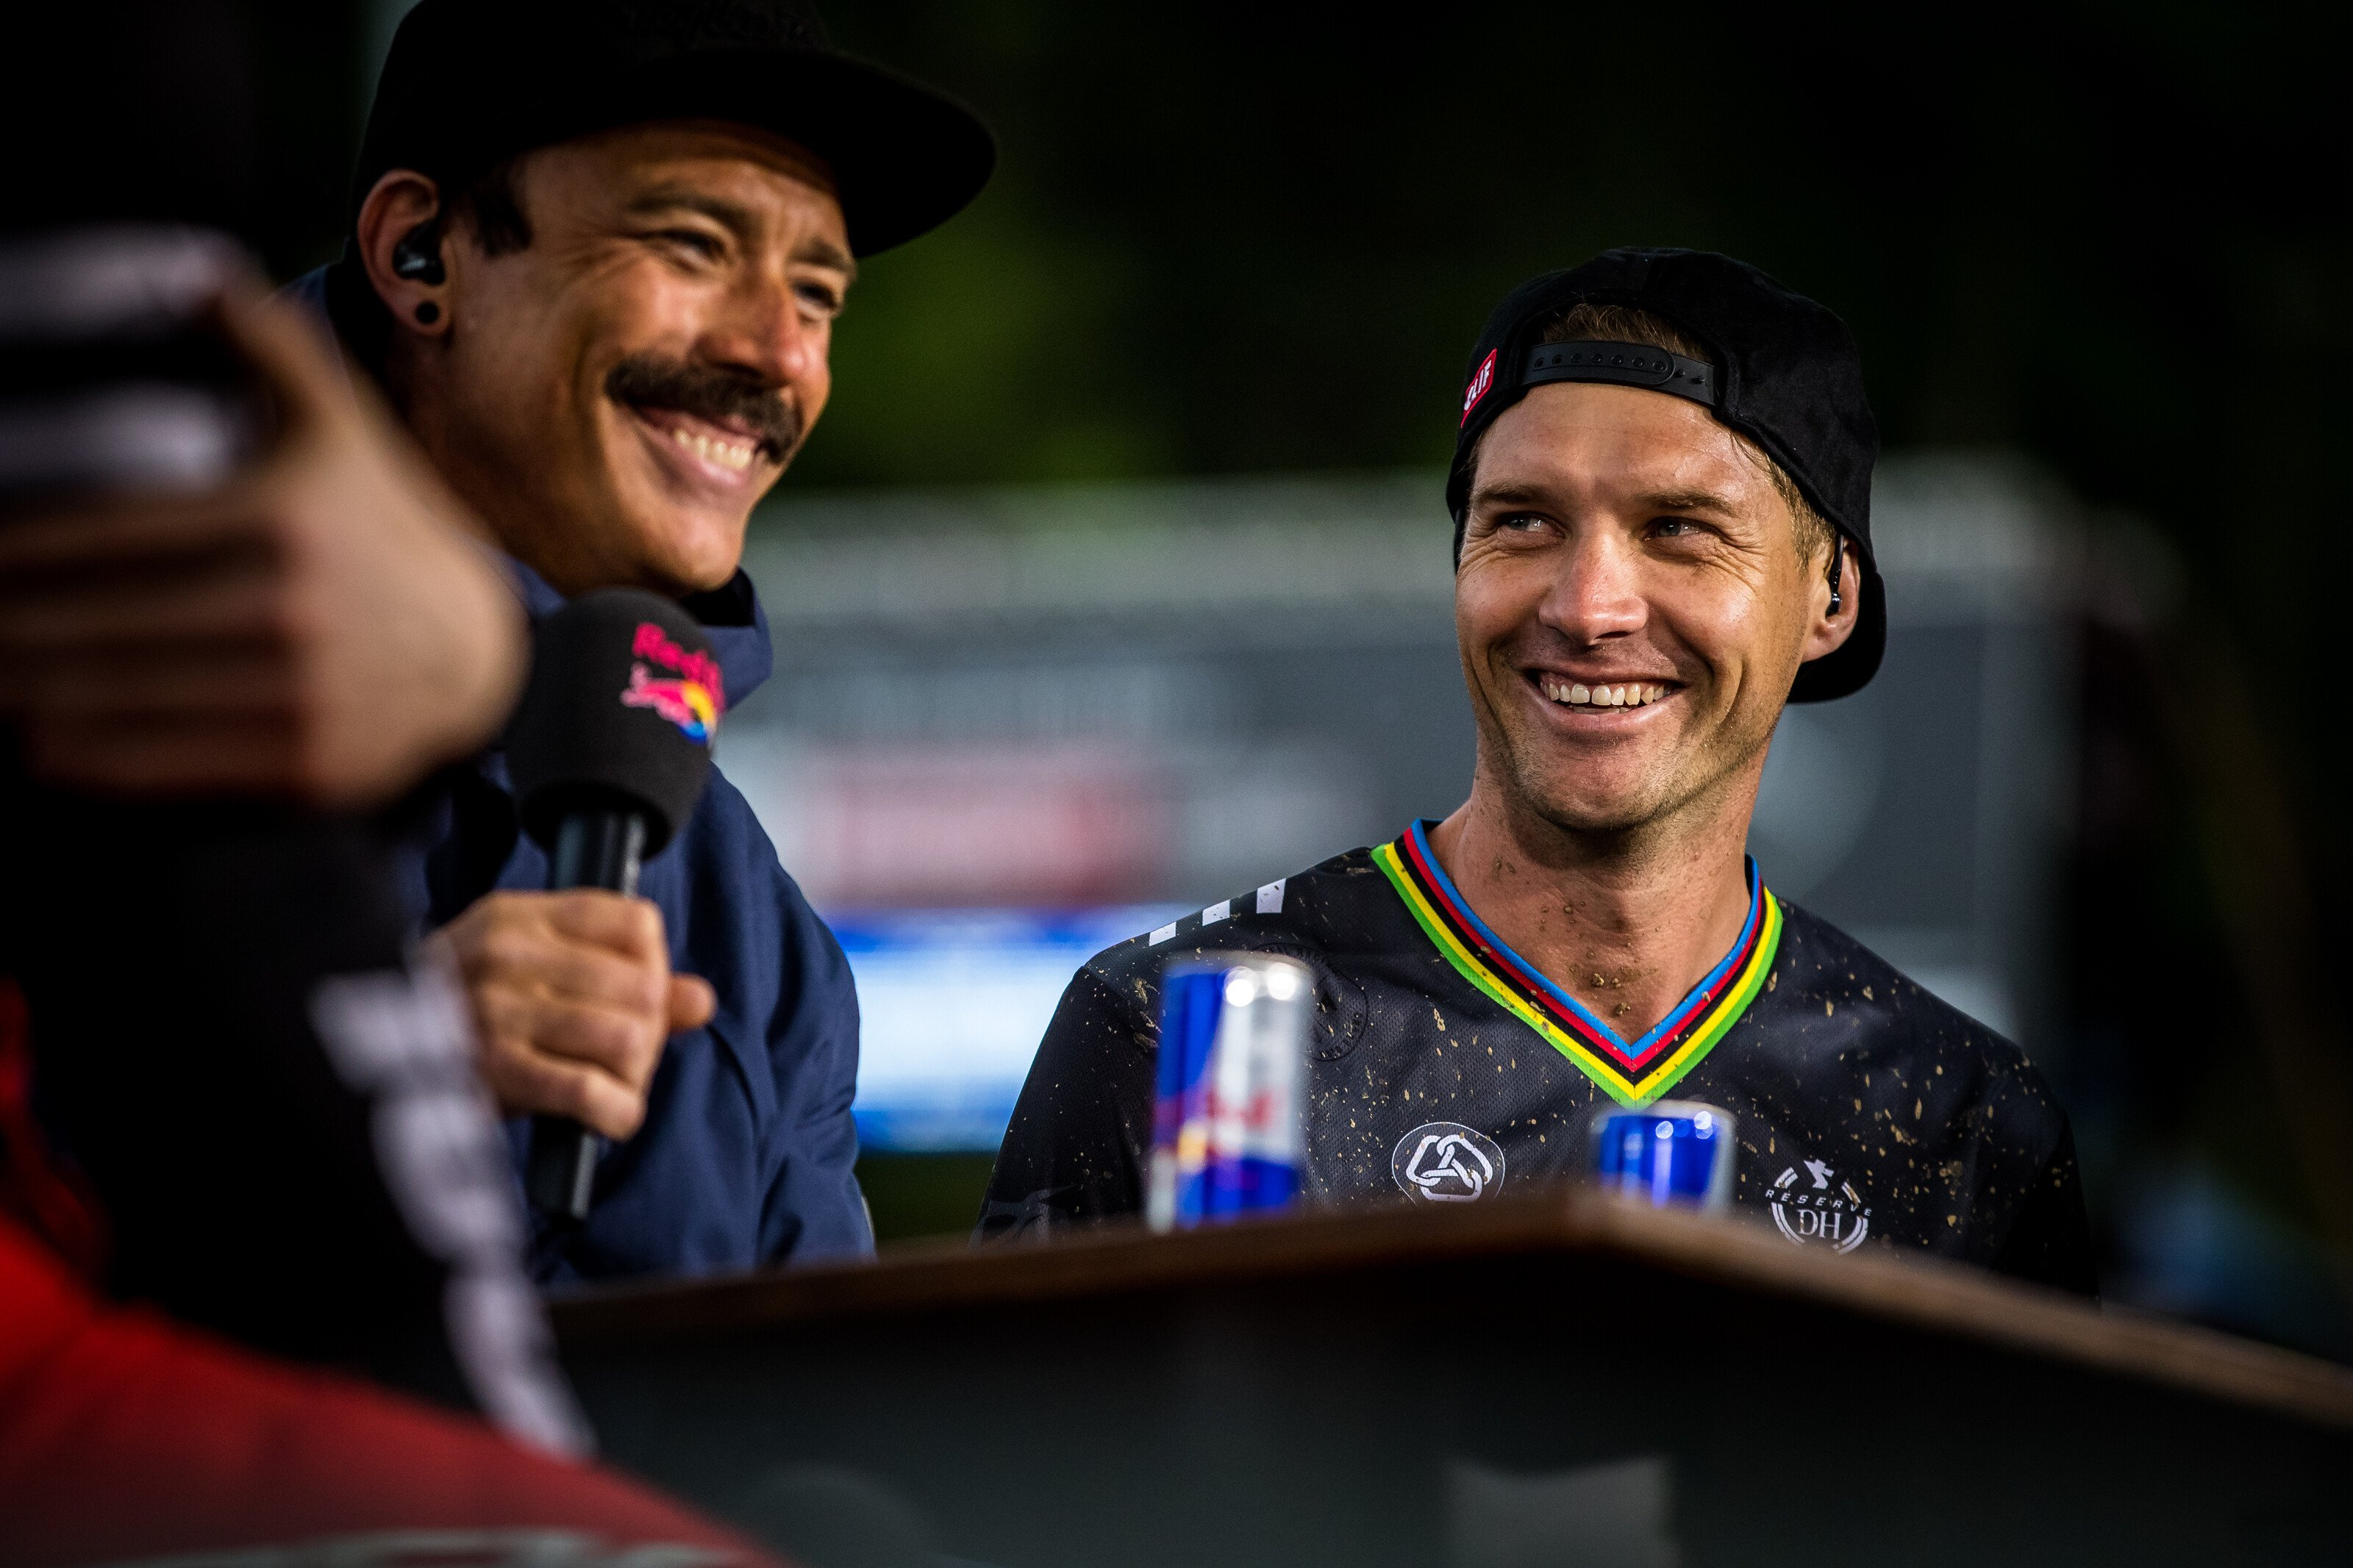 Greg Minnaar had to watch while being interviewed on Red Bull TV as he missed the top 60 in Maribor